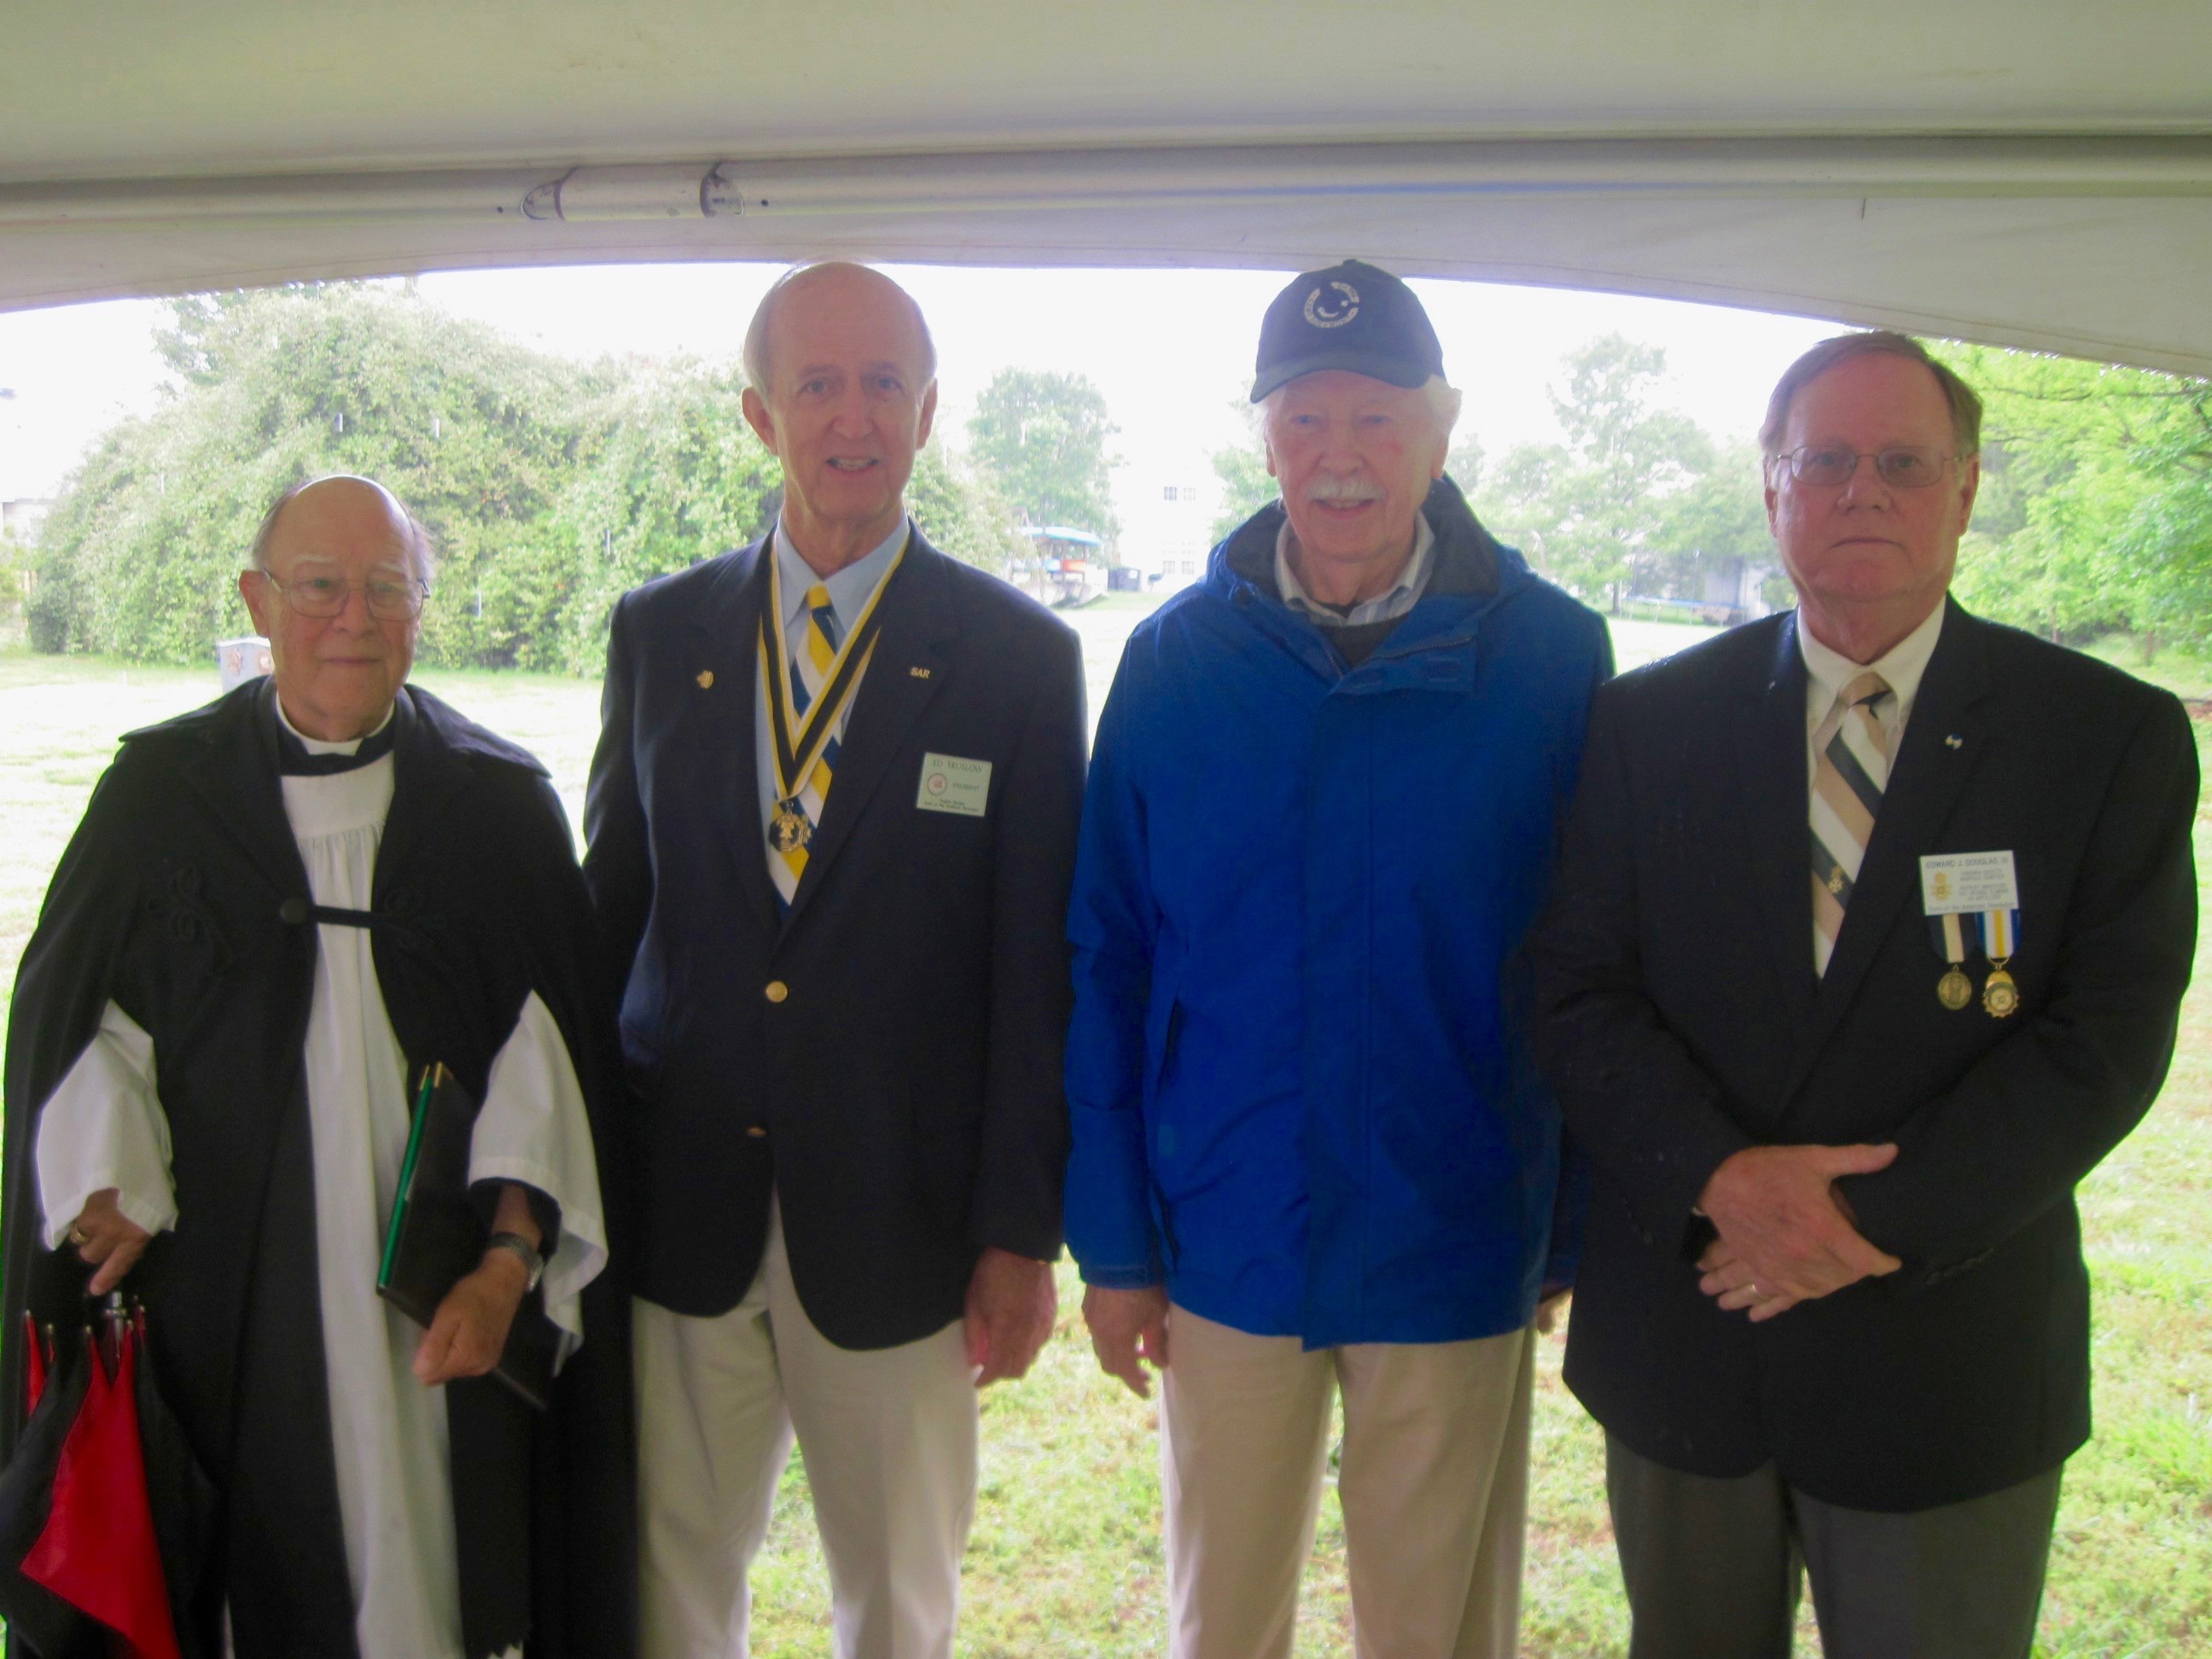 Attendees at the Dedication included L-R: Dr. Jim Henry, Chaplain, Williamsburg Chapter SAR, VASSAR President Ed Truslow, Mr. Fred Boelt, Williamsburg Chapter SAR and Edward Douglas, Secretary, Norfolk Chapter SAR